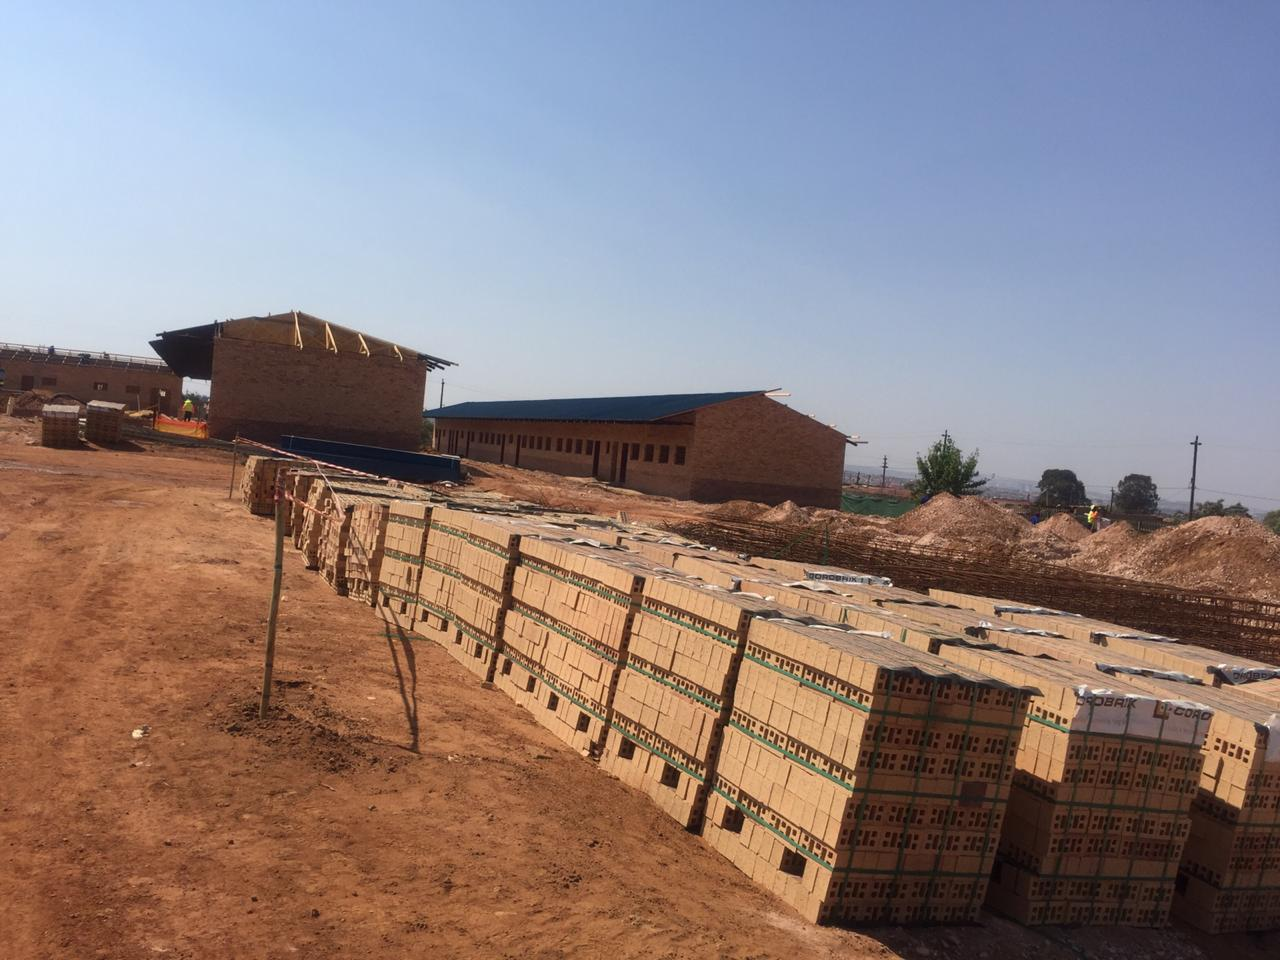 Braamfischer Primary School will not be completed this year due to unnecessary delays